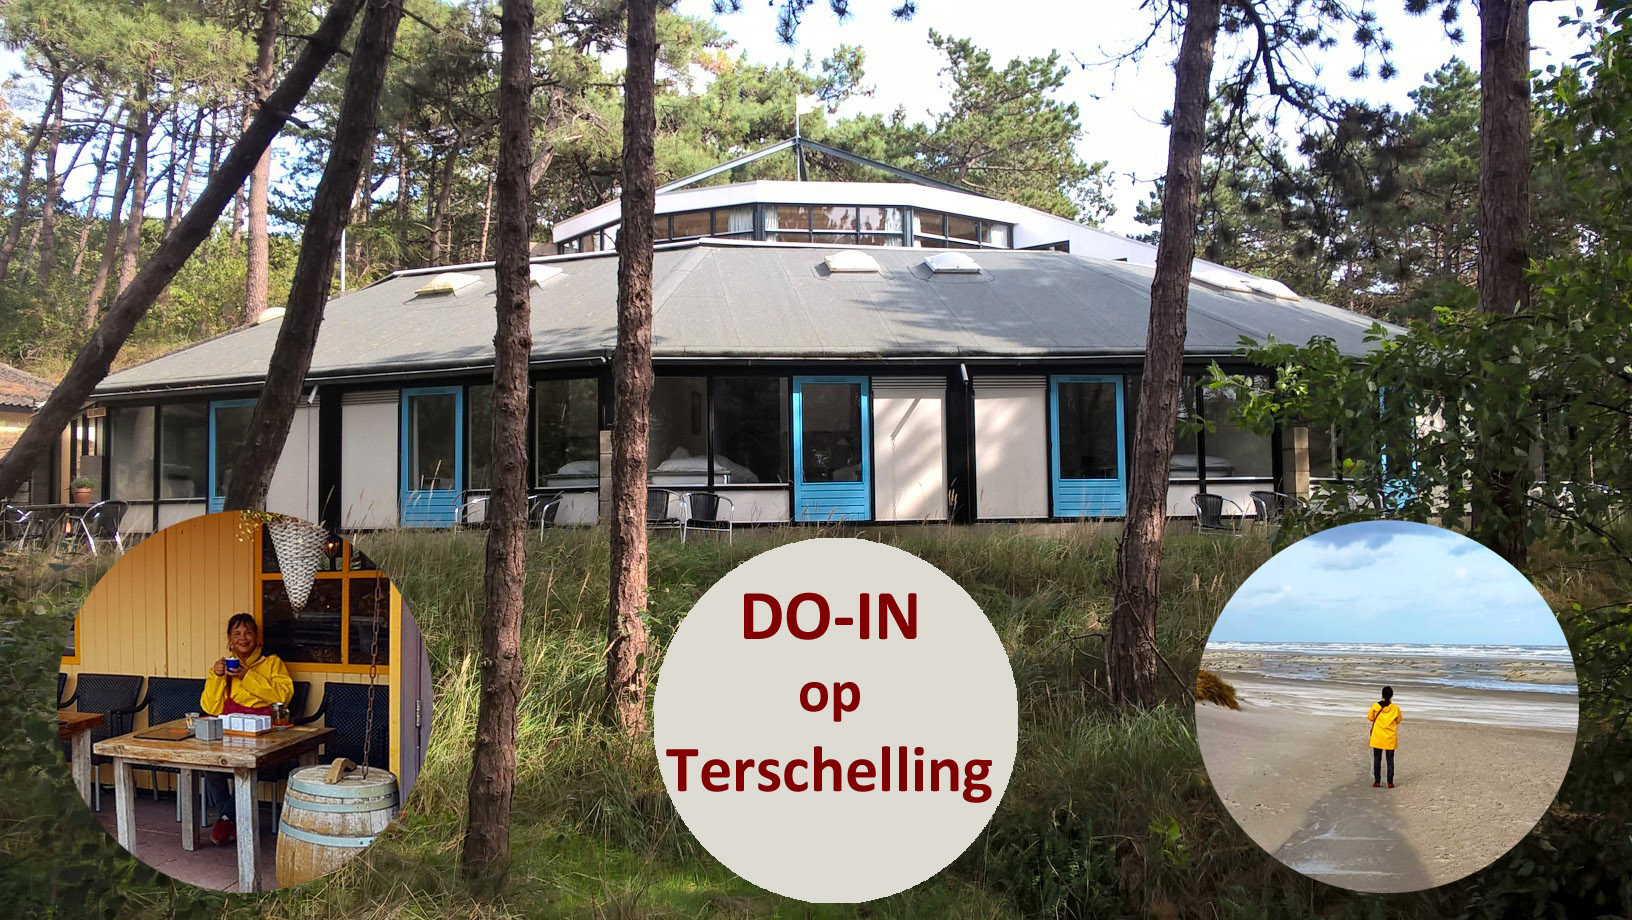 Volkshogeschool Terschelling, DO-IN retraite